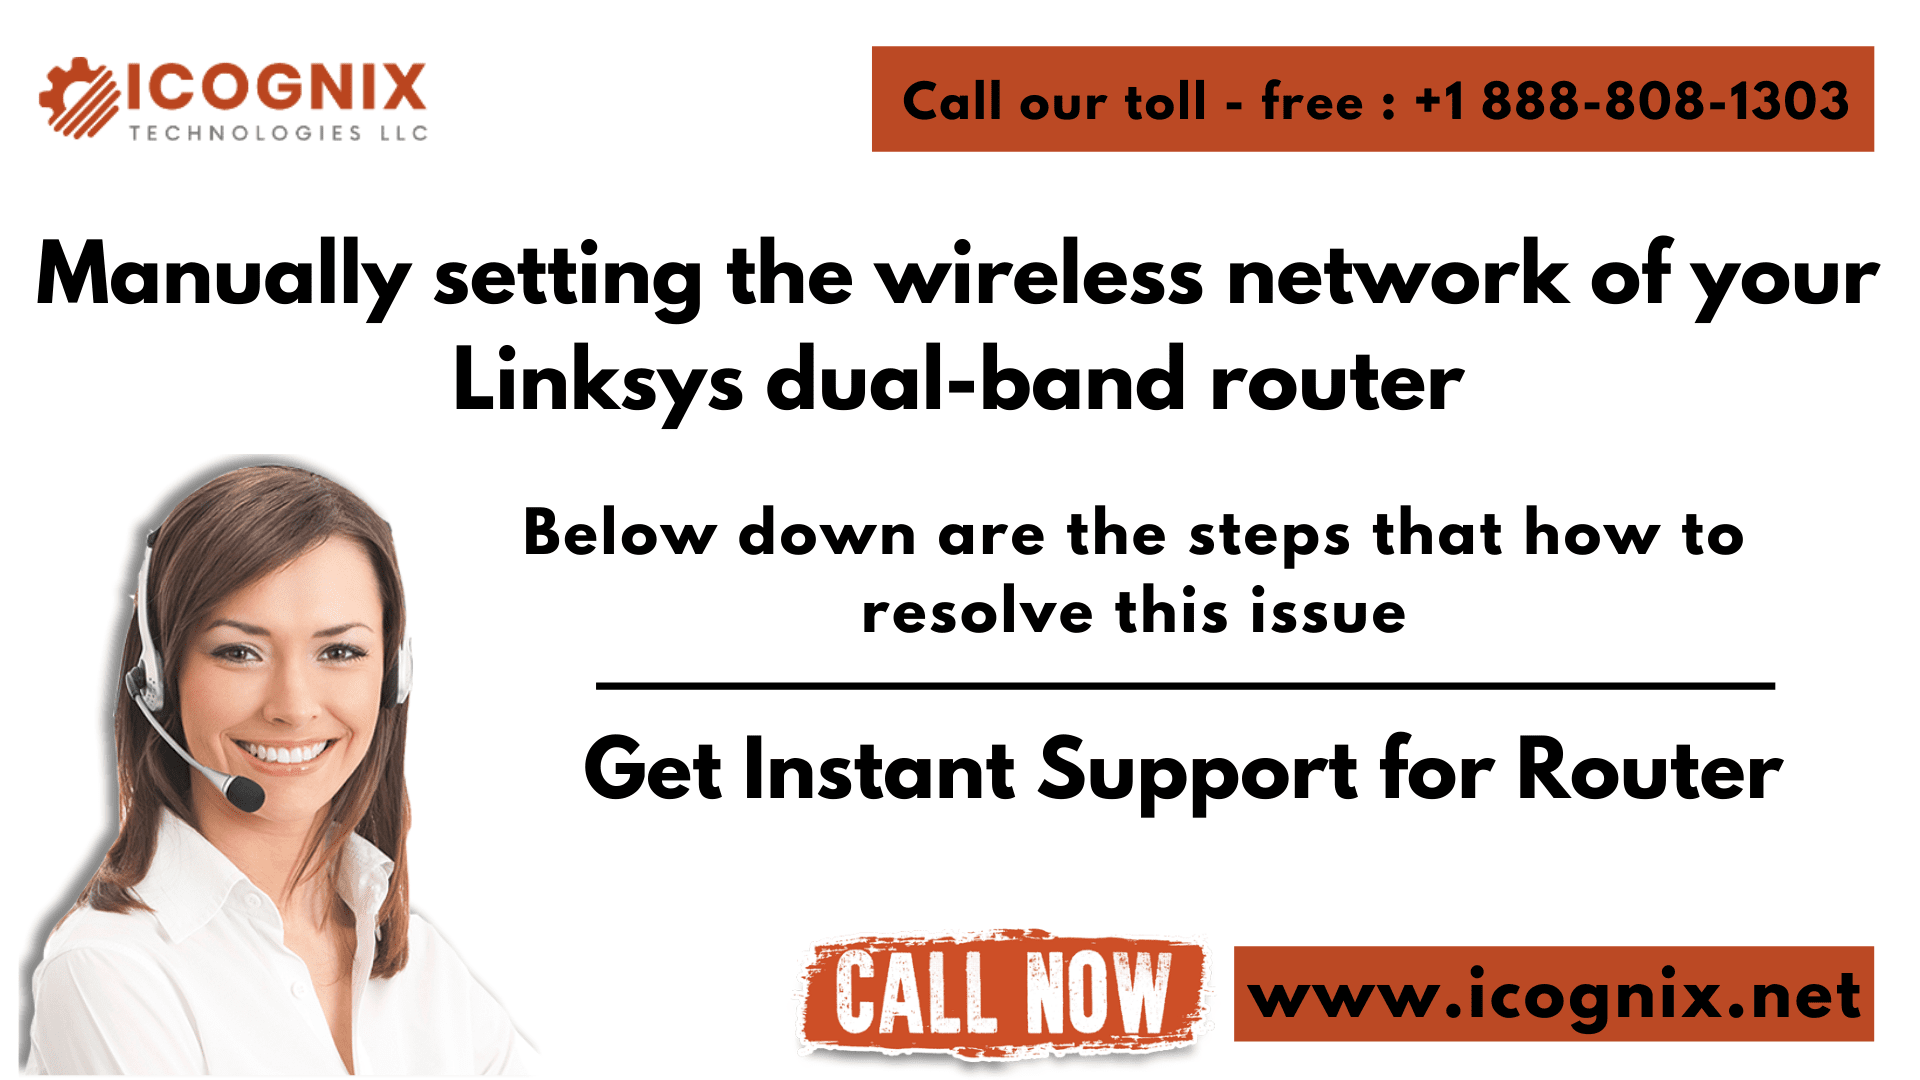 Manually setting the wireless network of your Linksys dual-band router